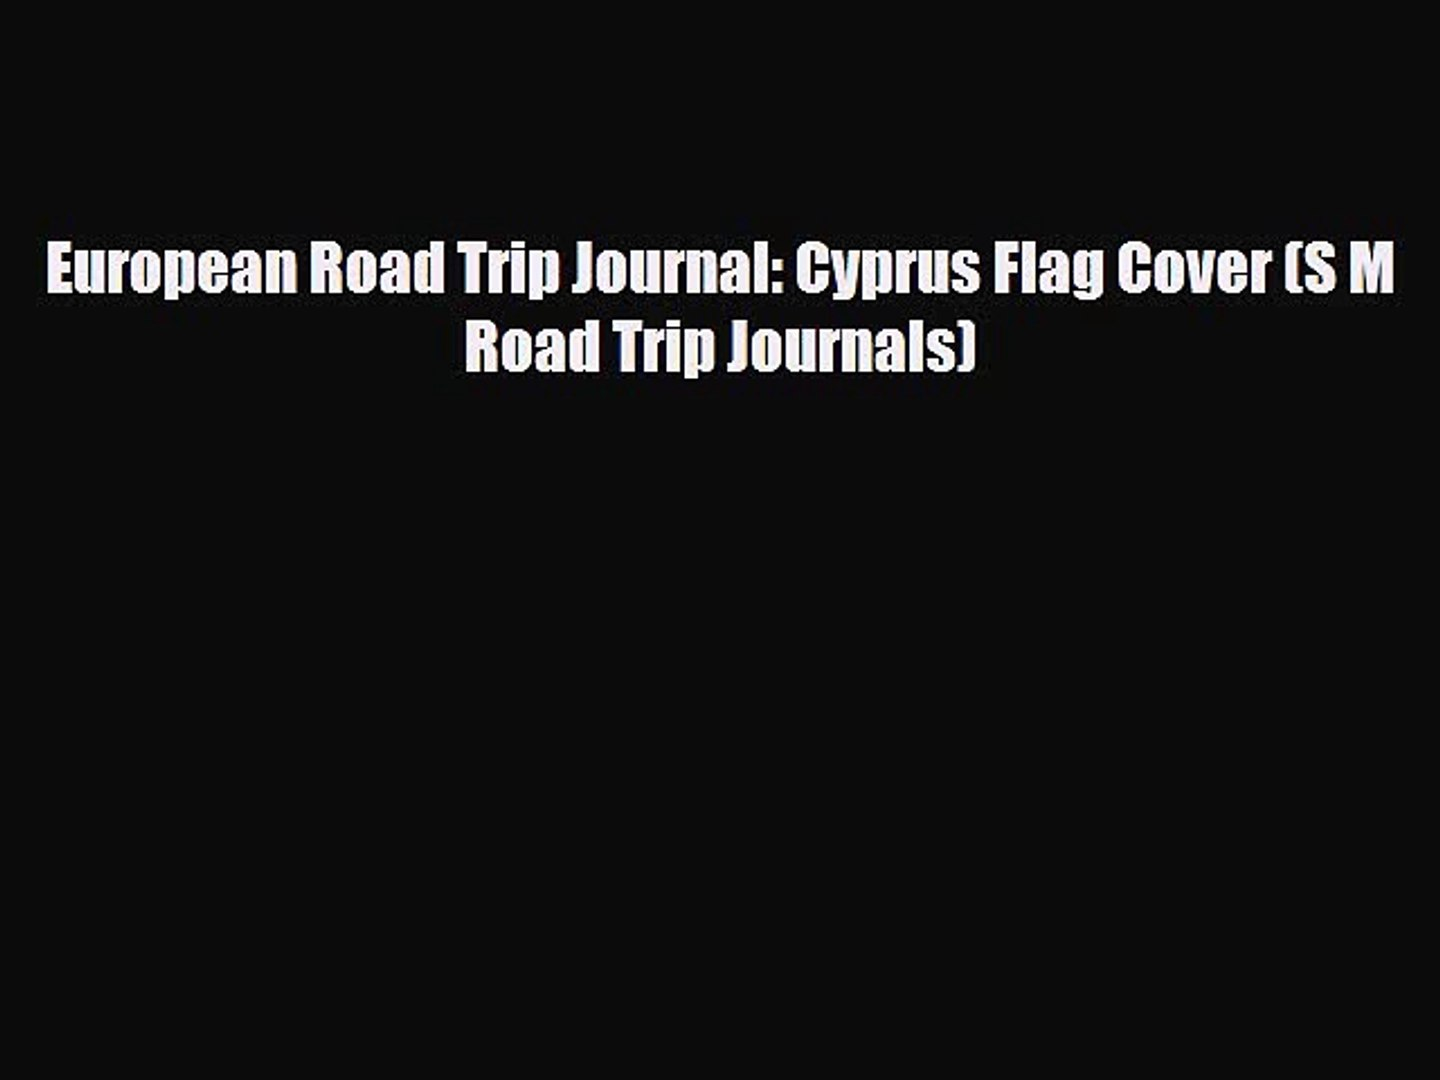 Download European Road Trip Journal: Cyprus Flag Cover (S M Road Trip Journals) PDF Book Free